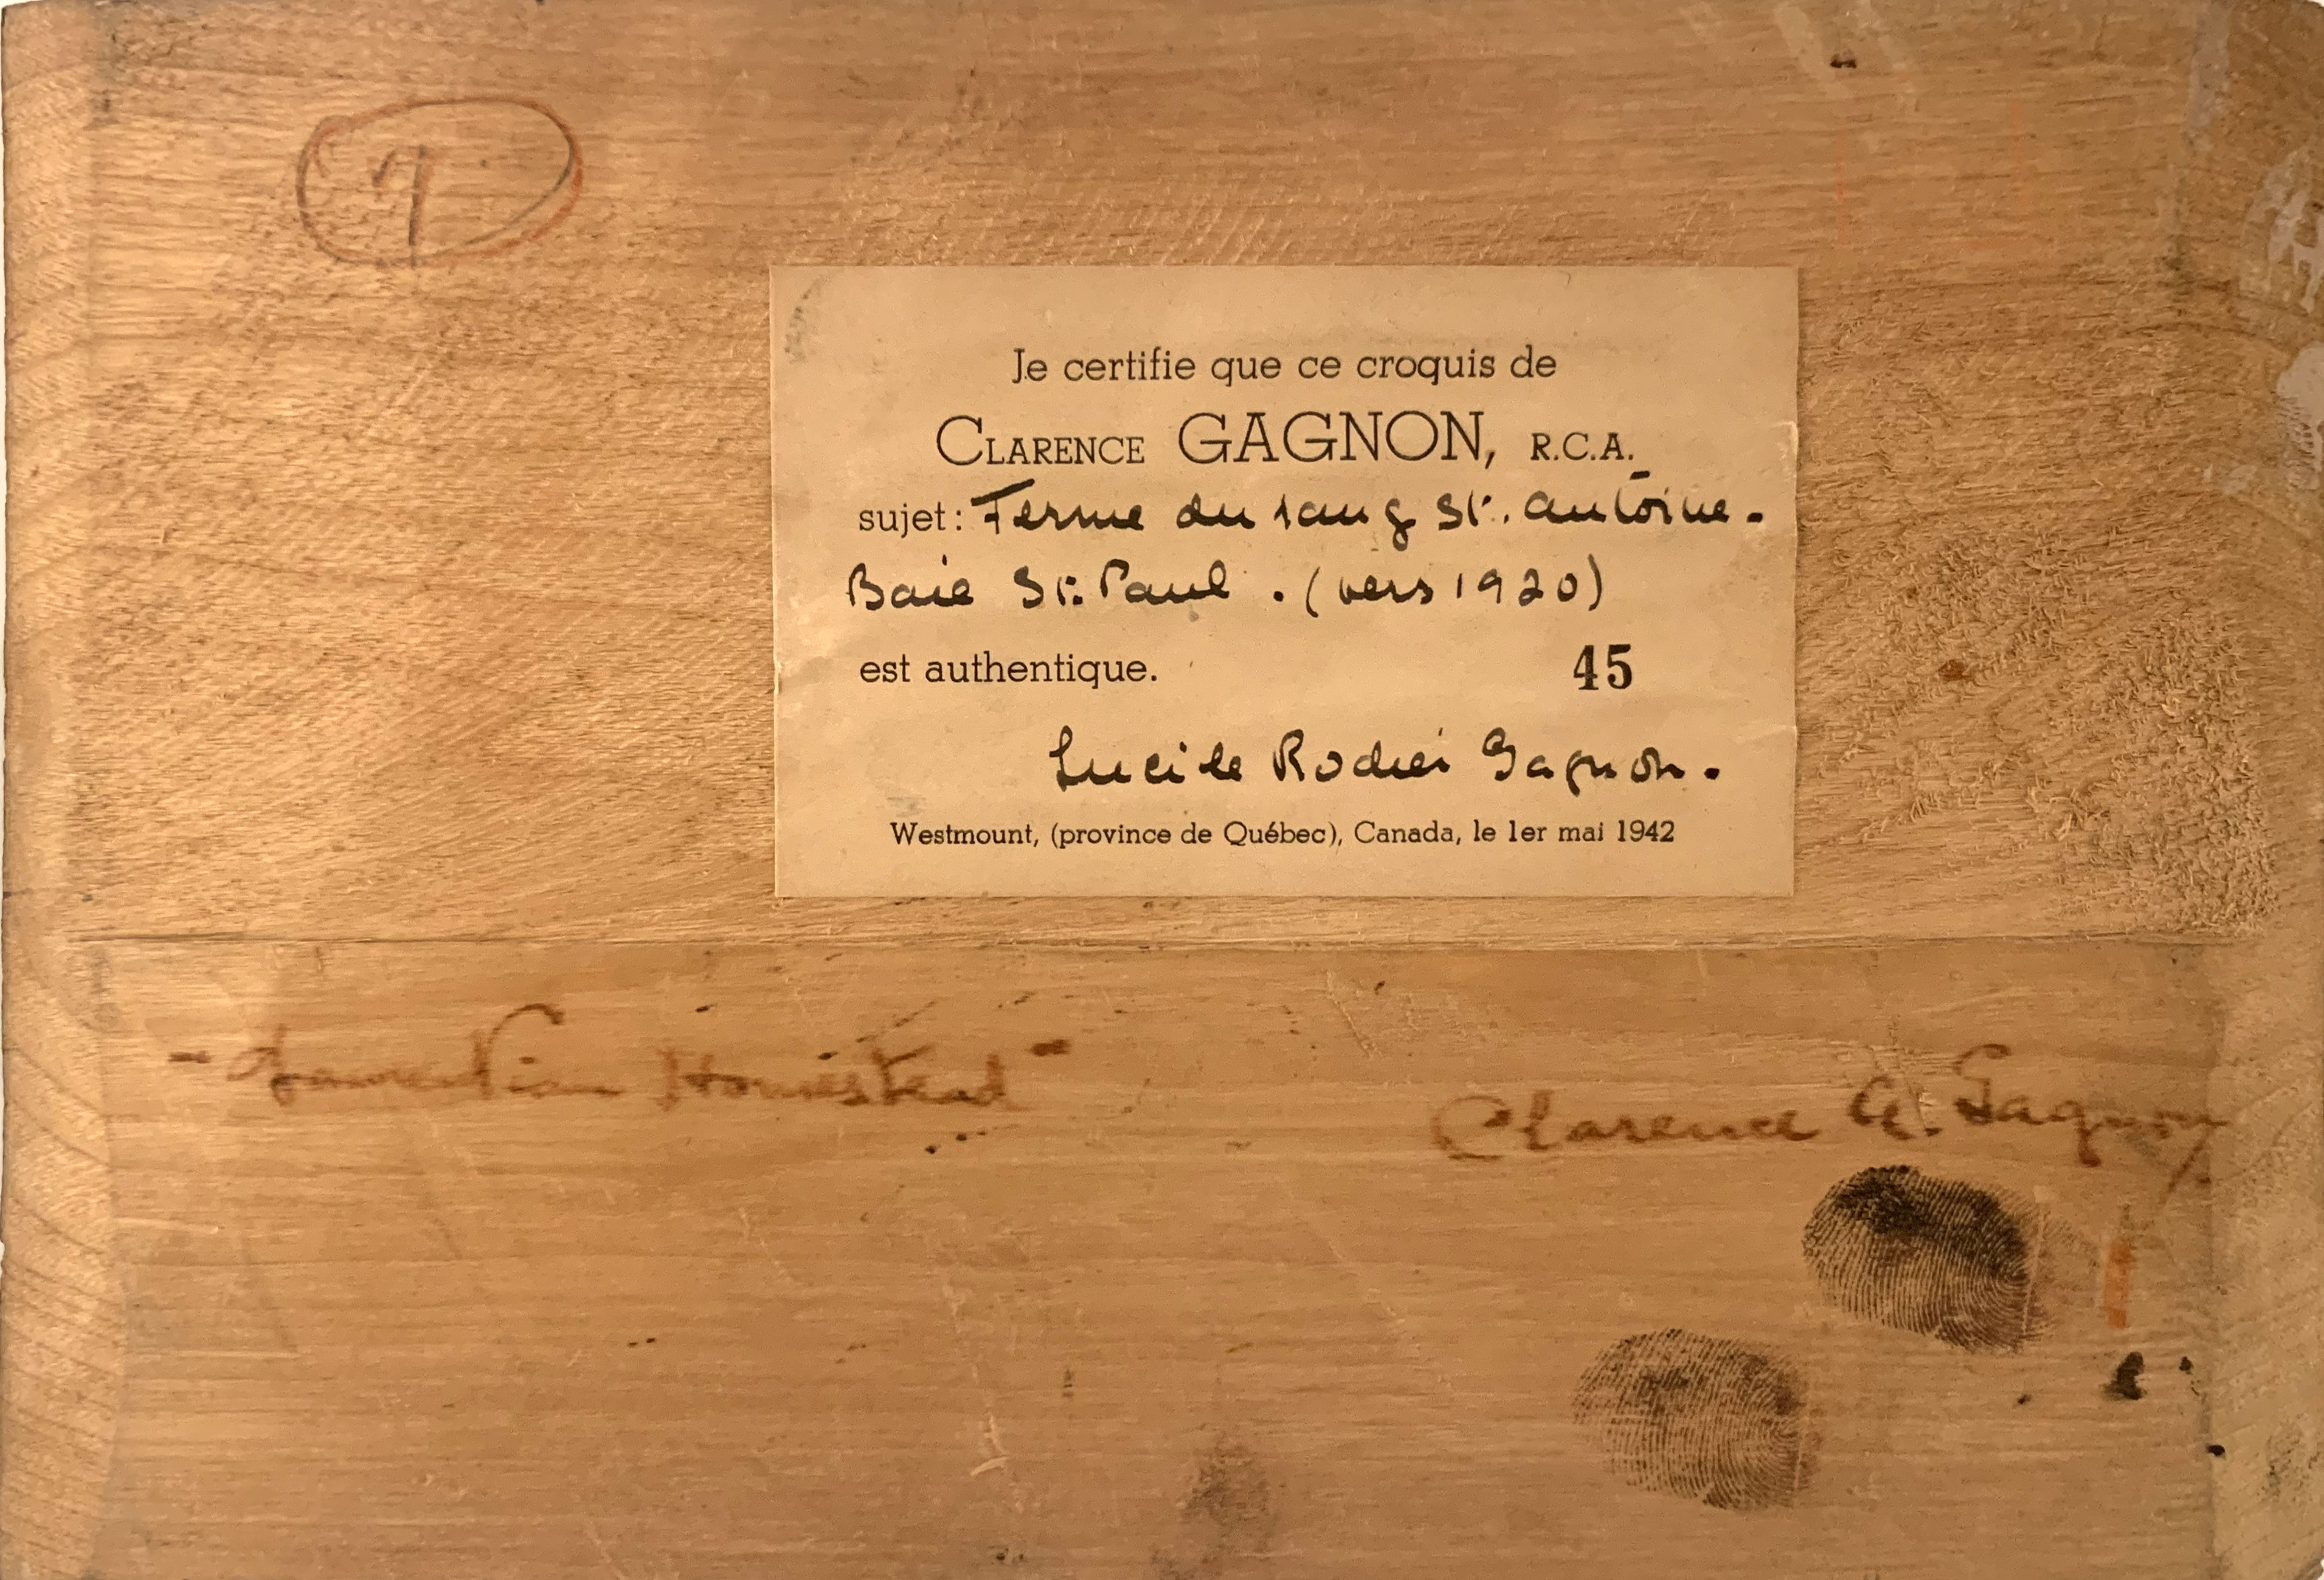 Verso of Laurentian Homestead / Ferme du rang St Antoine, Baie St. Paul with artist's title, his signature, his thumbprints, and Mme. Gagnon's certification label